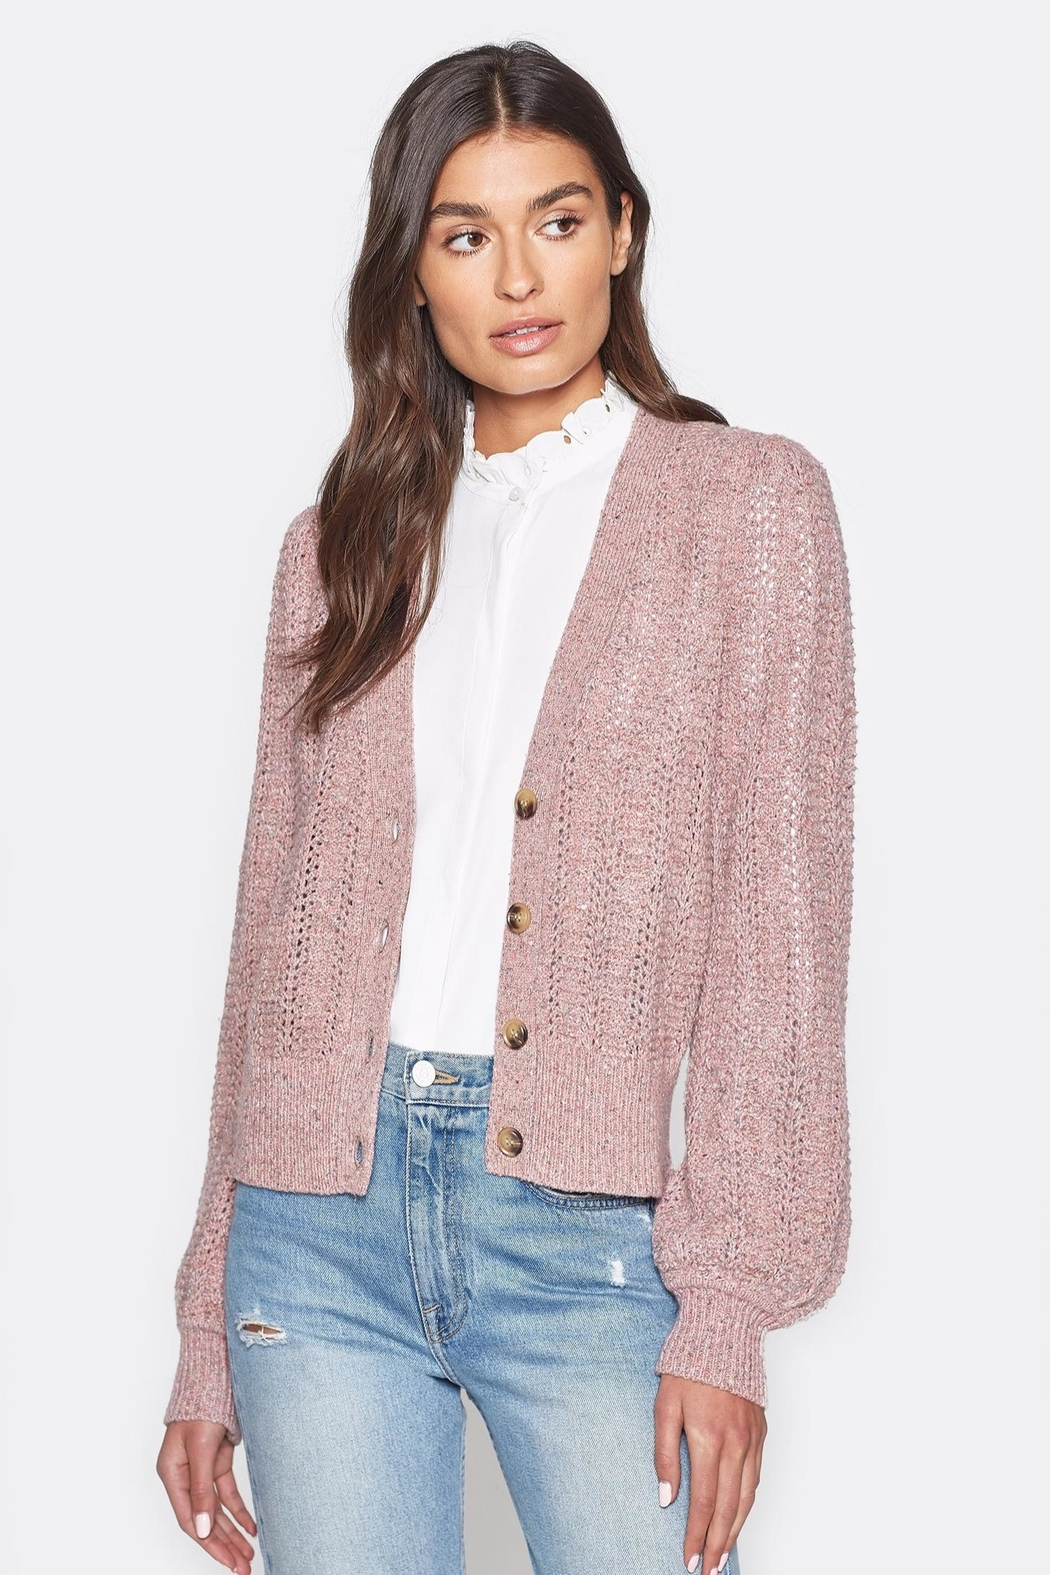 Folle de Joie Bilina Lilac Sweater - Side Cropped Image